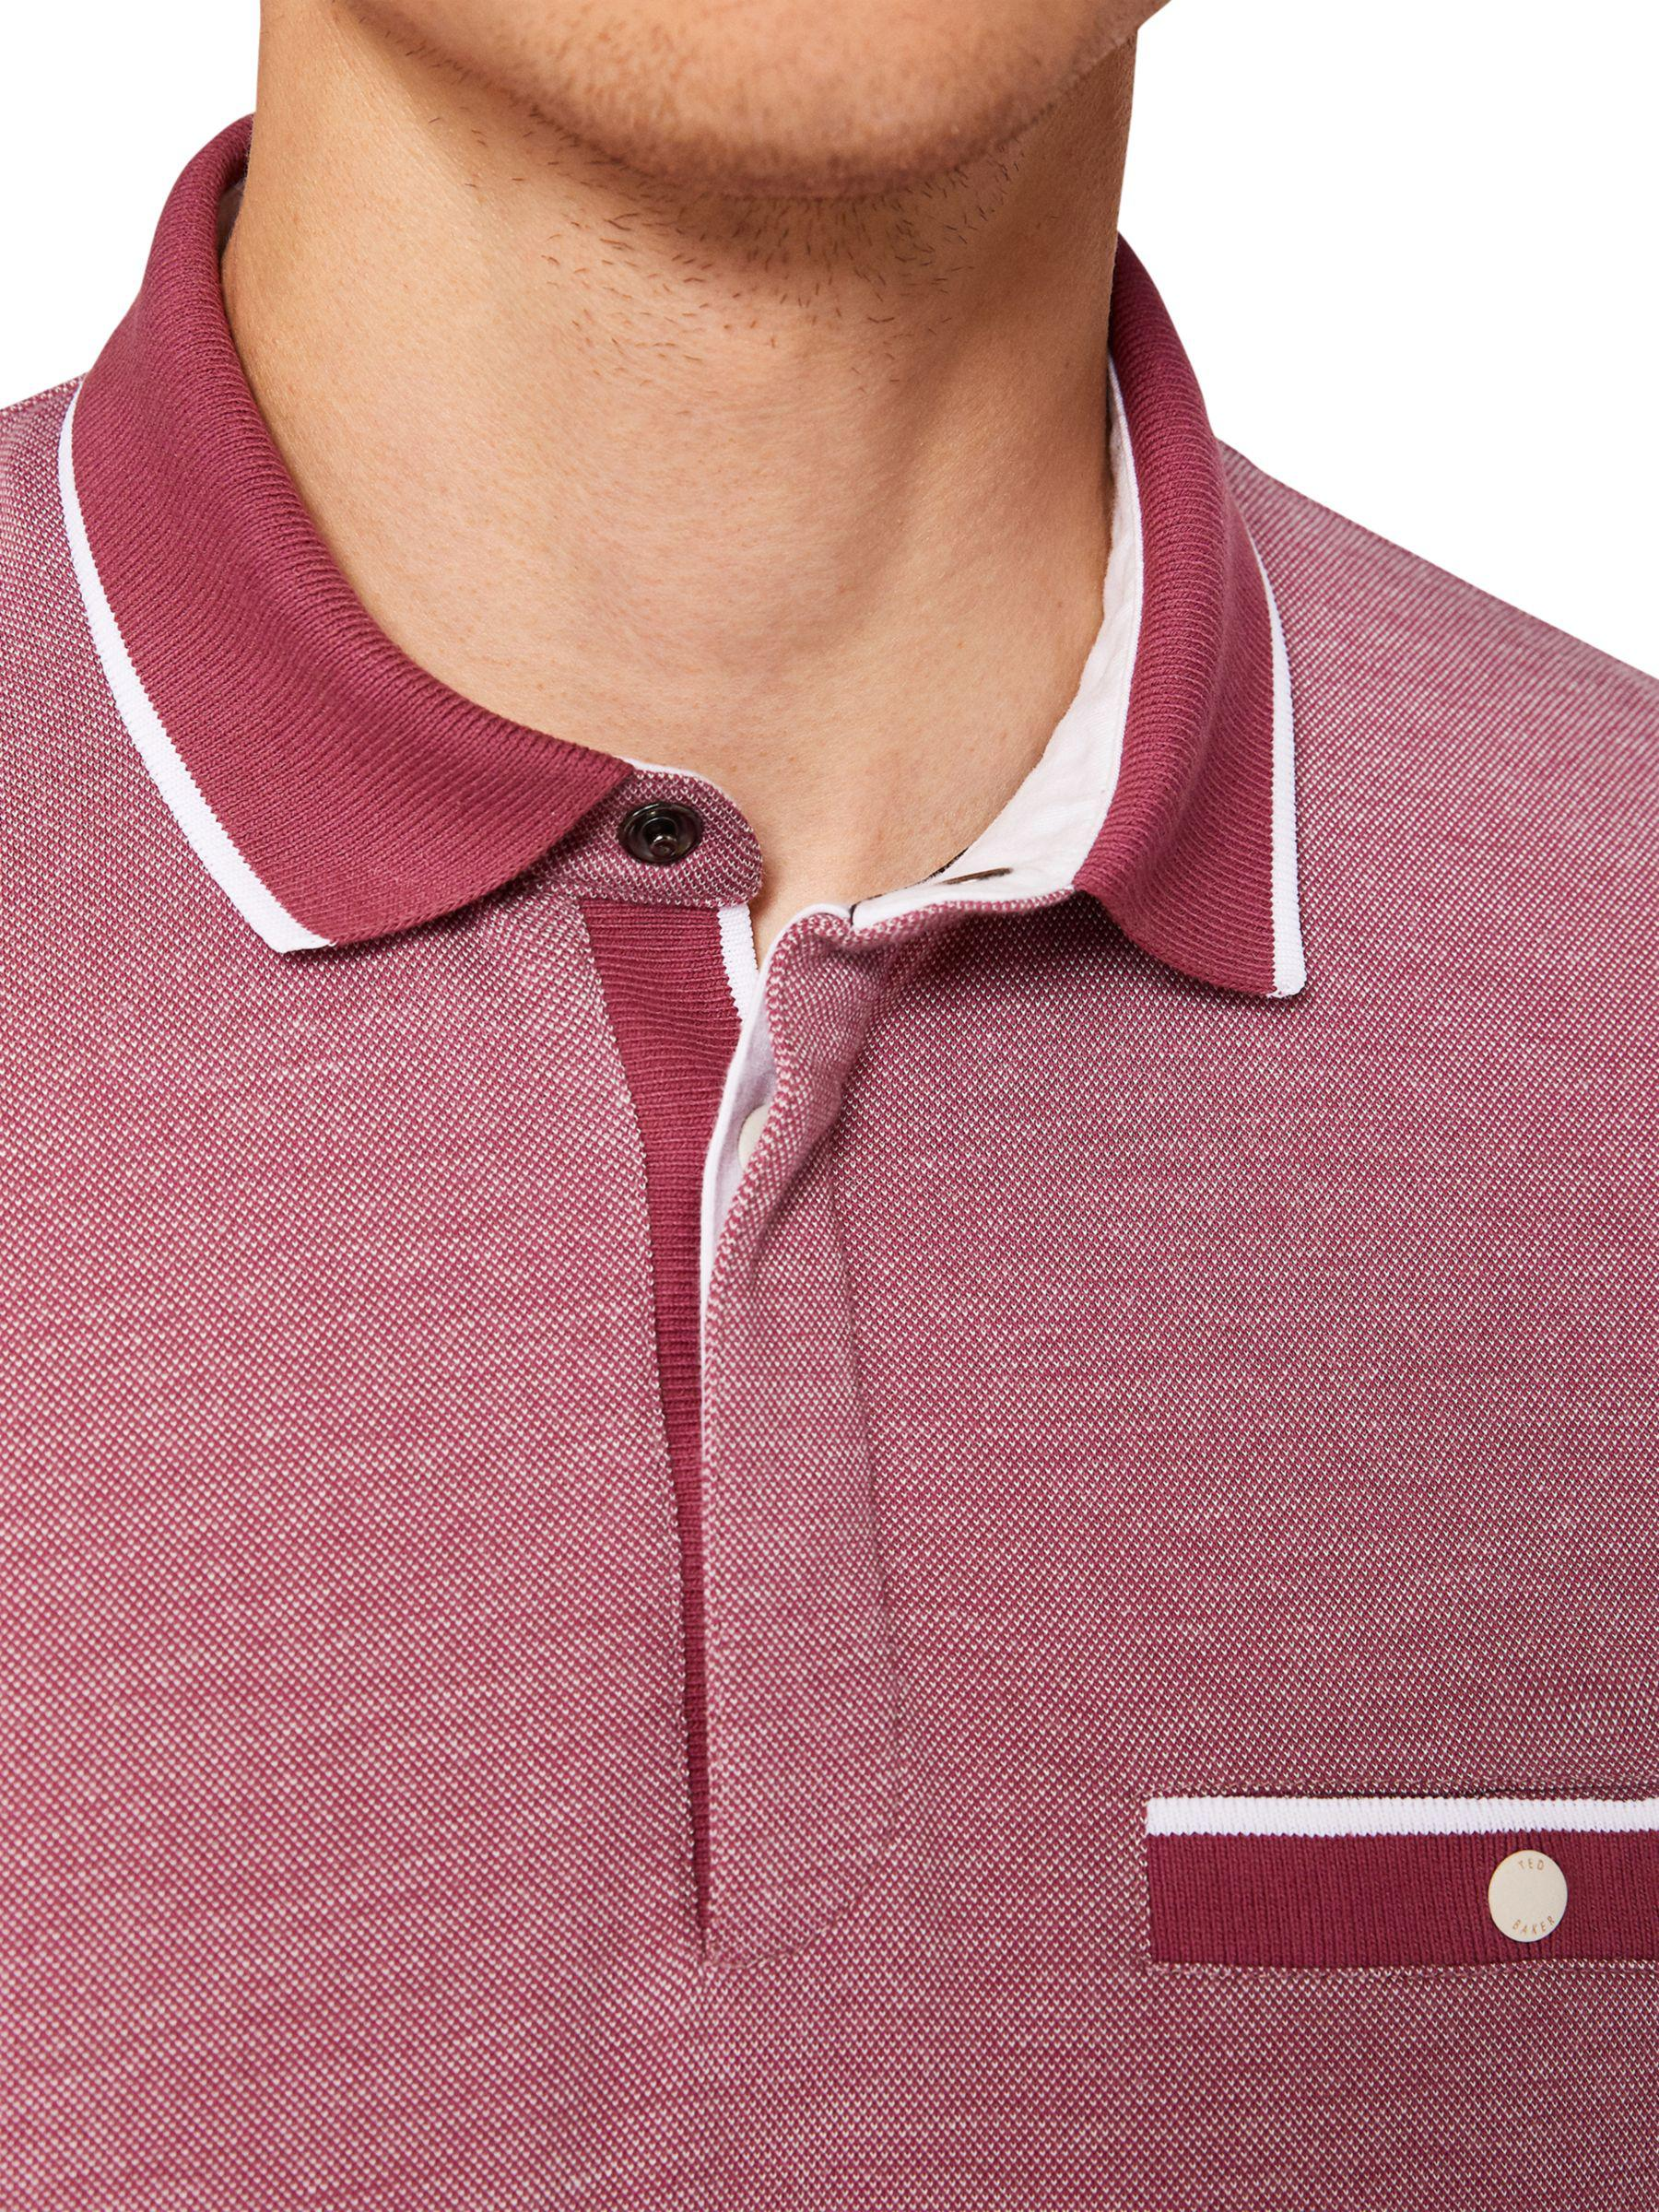 c1b73edf129c Ted Baker Depot Short Sleeve Polo Shirt in Pink for Men - Lyst